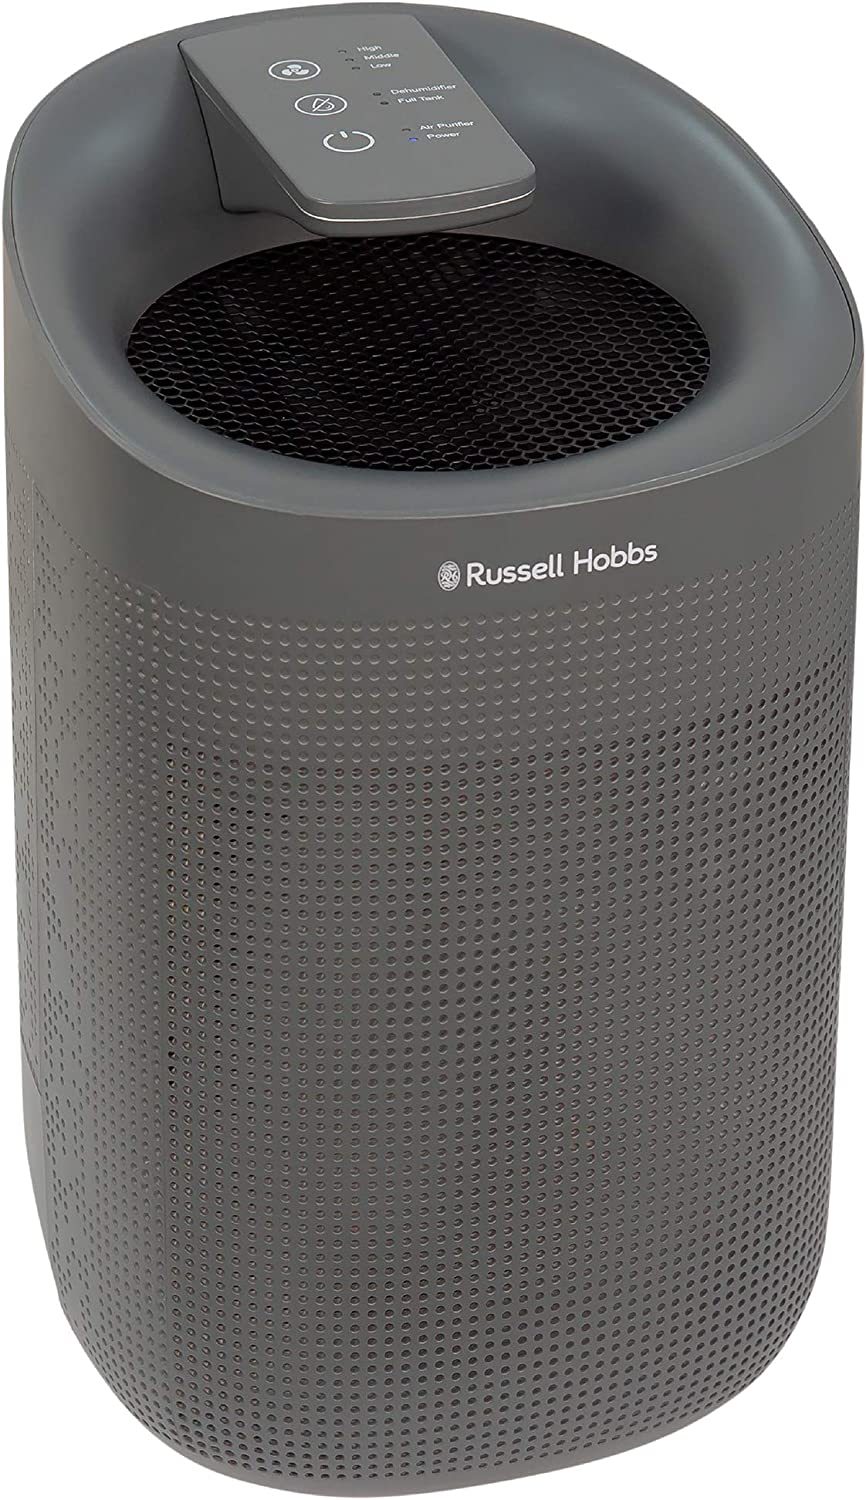 Garage LED Lighting /& Captures Bacteria Caravan Russell Hobbs RHDH1101B 1L 2 in 1 Black Dehumidifier//Air Purifier with HEPA Filter 20m2 Room Size Kitchen Basement for Home Bathroom